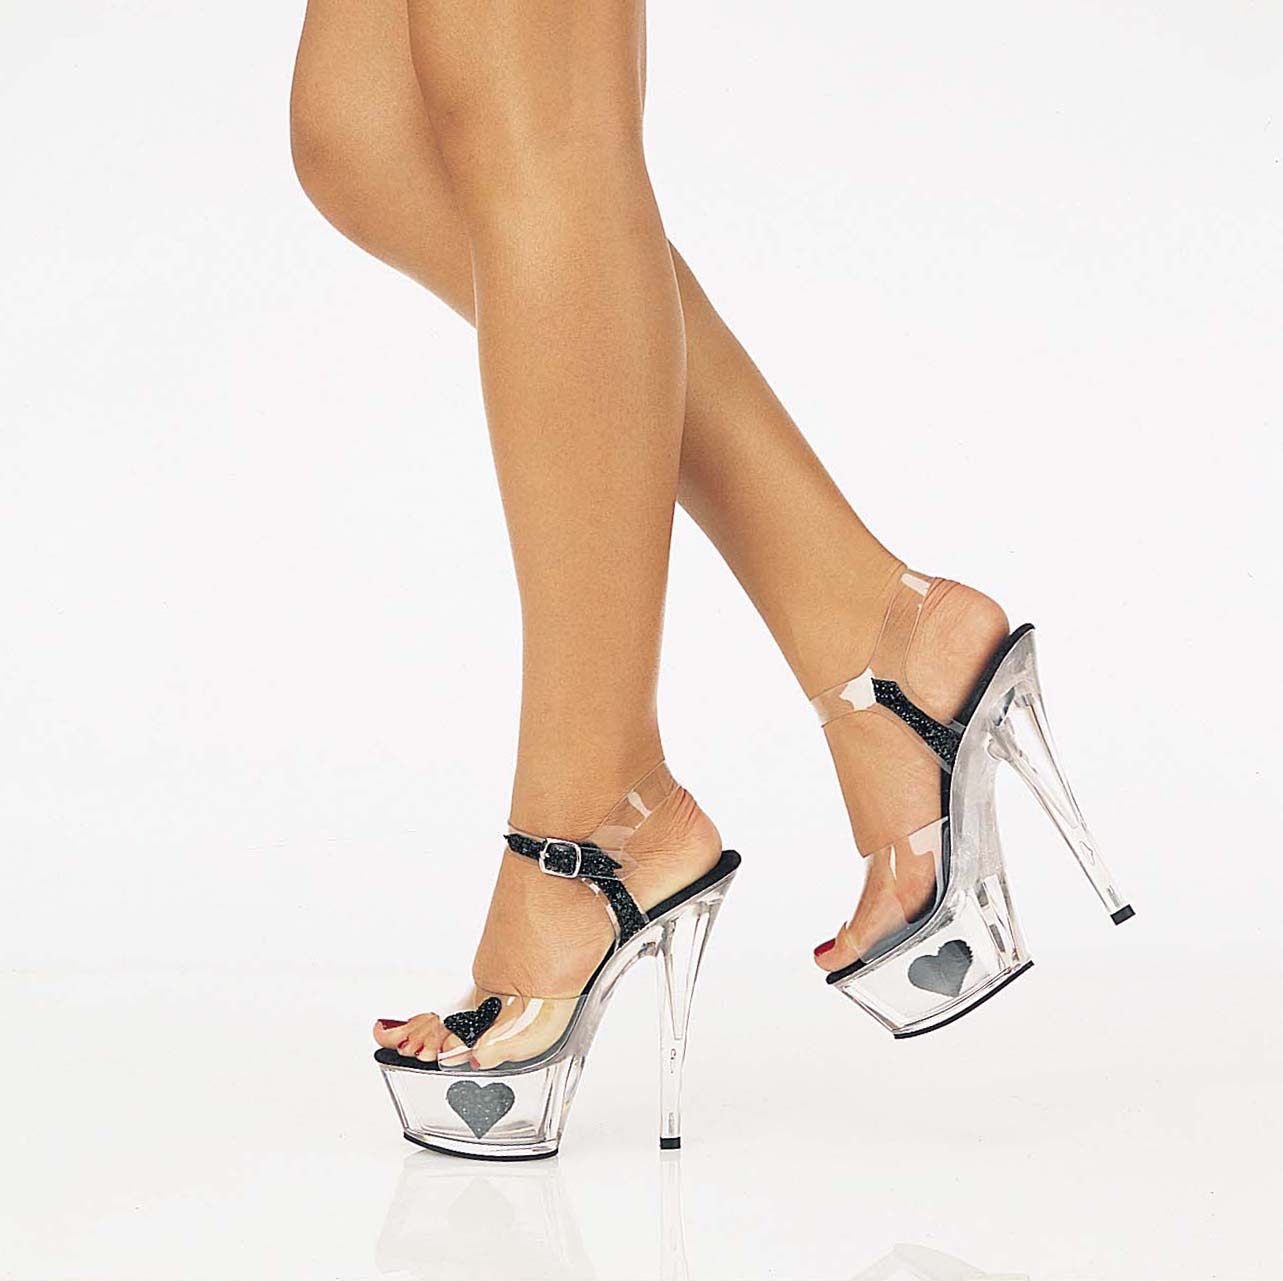 glass slipper high heel shoes for fashion inspiration photos